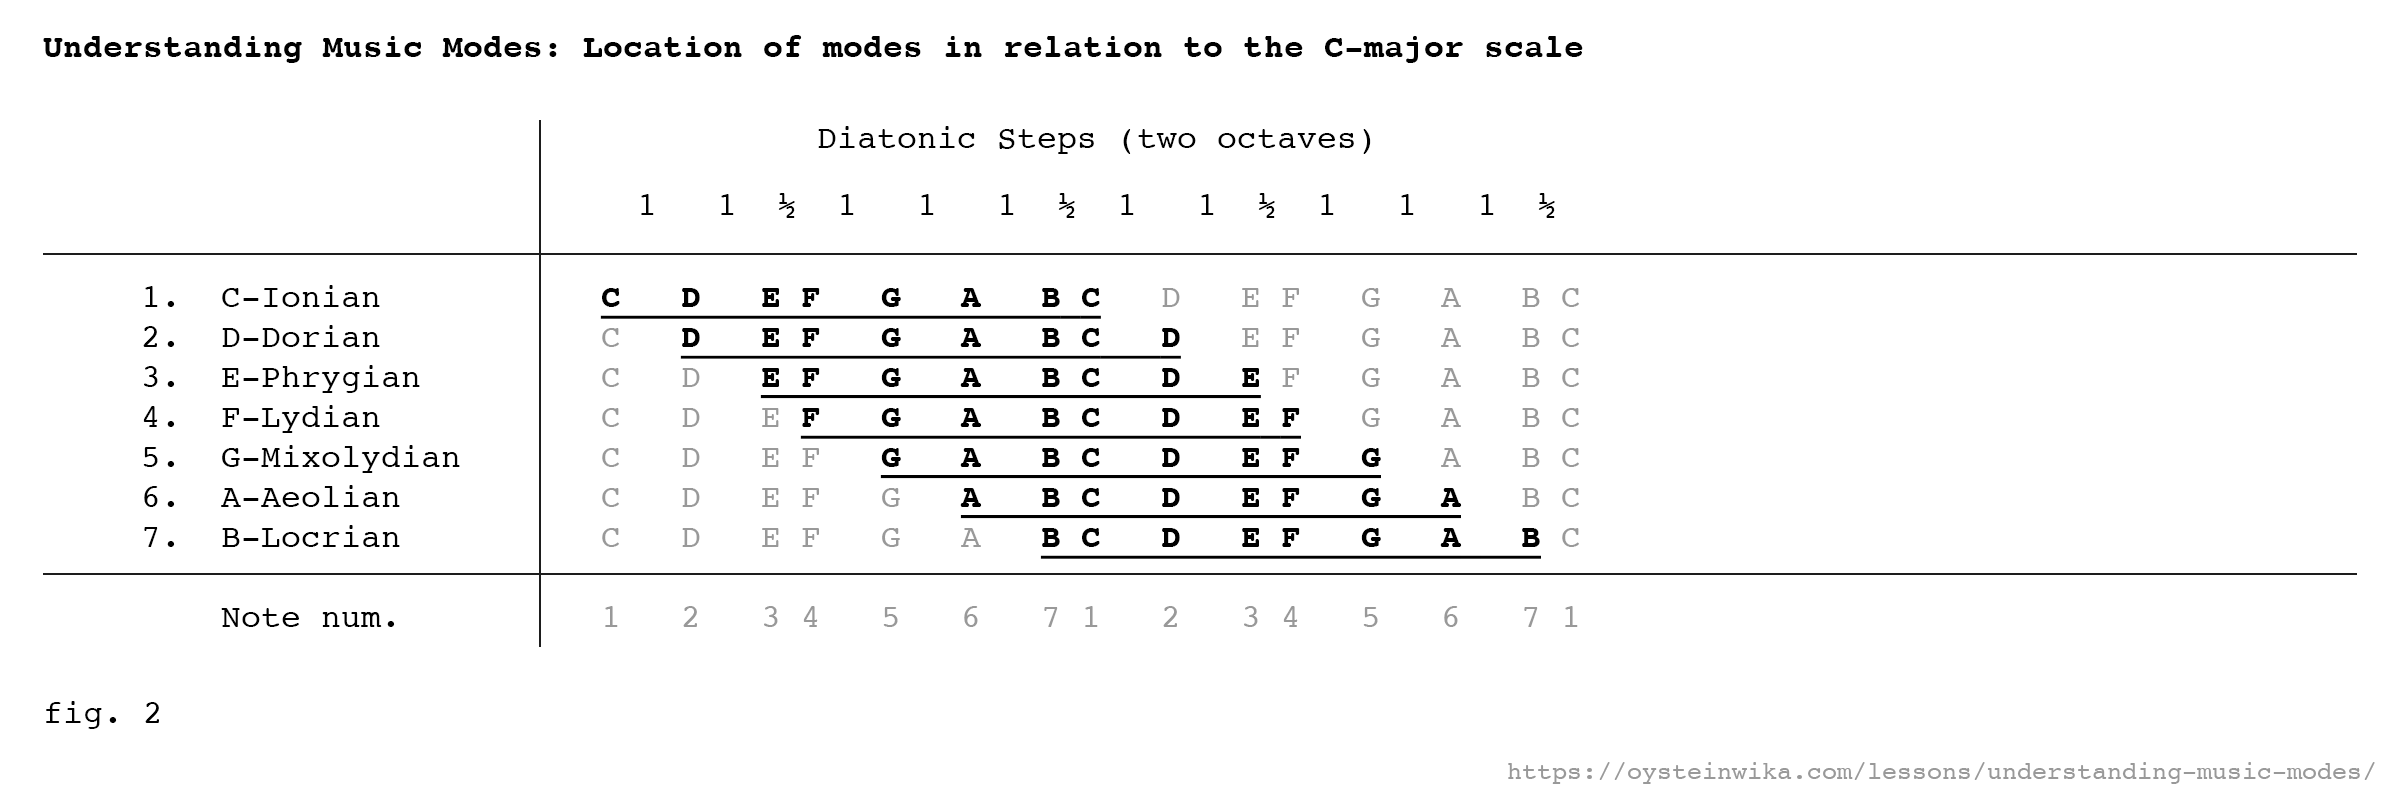 Fig. 2 - Understanding Music Modes: Location of modes in relation to the C-major scale